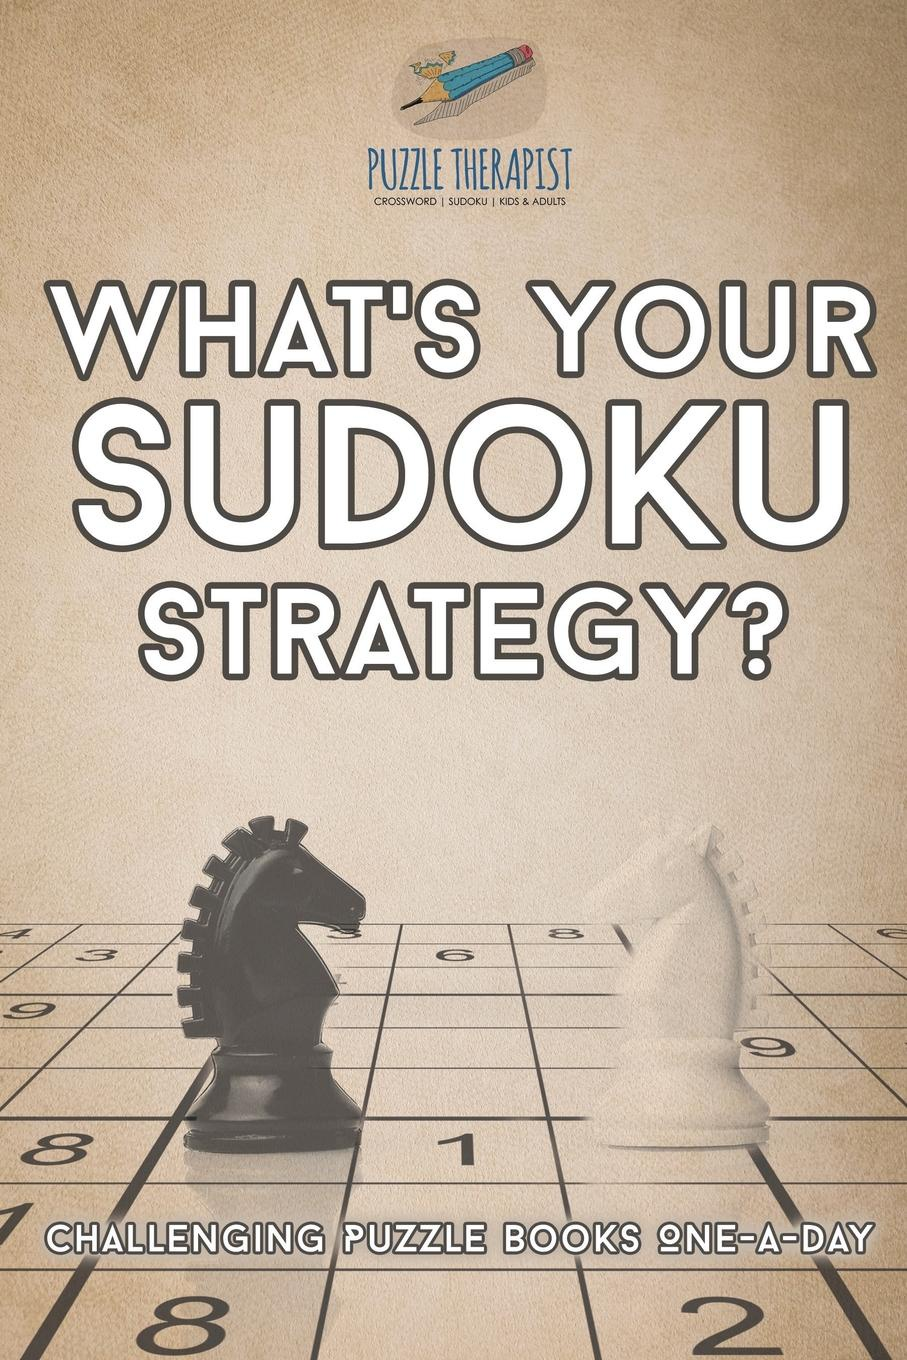 Puzzle Therapist What's Your Sudoku Strategy? . Challenging Puzzle Books One-a-Day puzzle therapist one a day sudoku for the utterly obsessed large print puzzles for adults